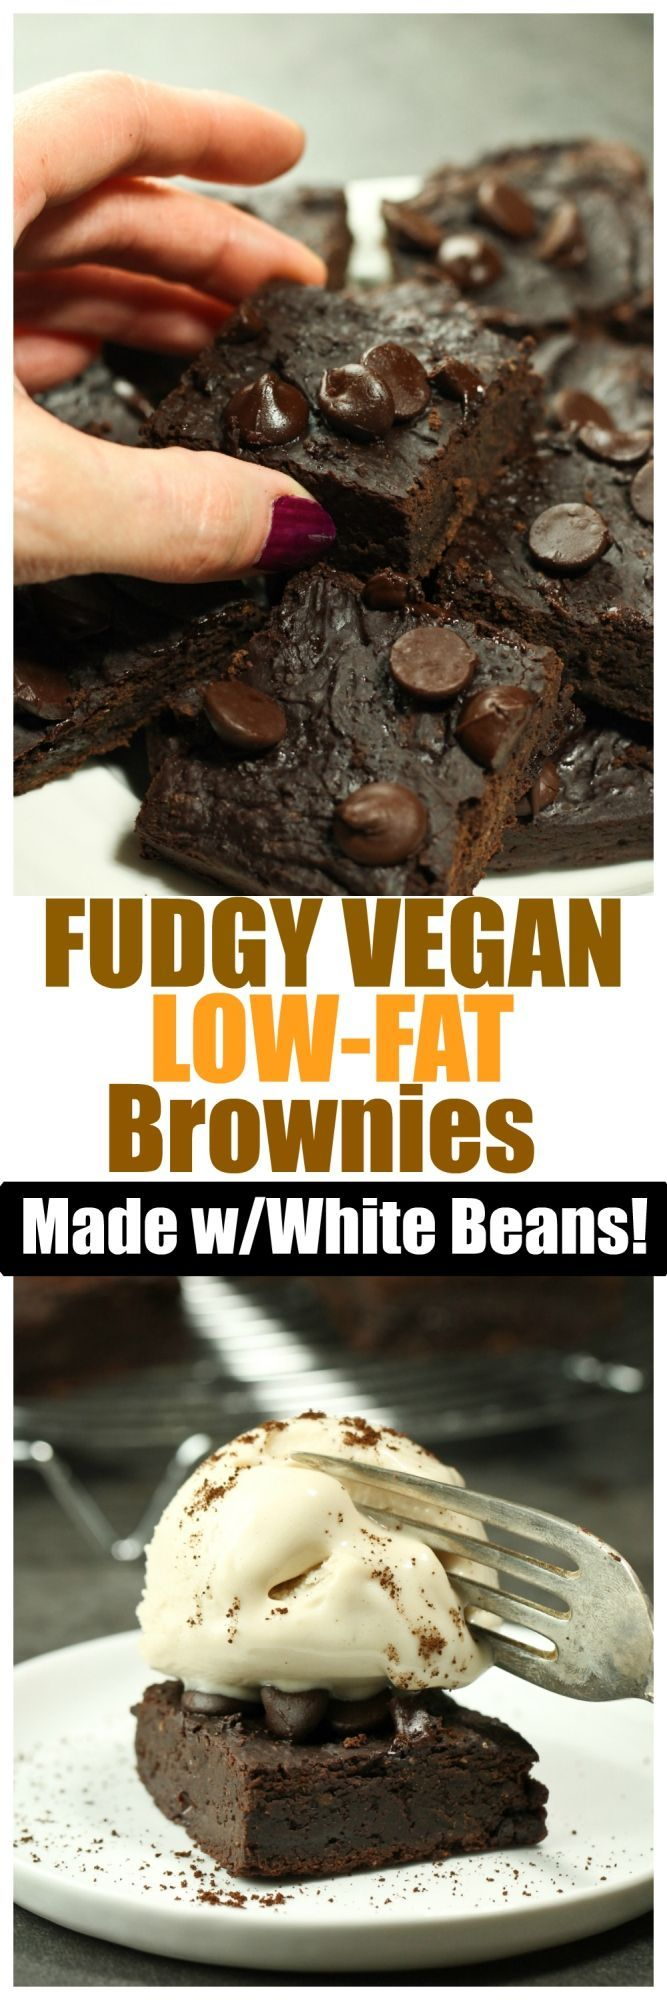 These Fudgy Vegan Gluten-Free Low-Fat Brownies are made in the food processor with no bowl required! These are the most decadent, rich and fudgy brownies without the guilt! You will truly be amazed that these are so low-fat!